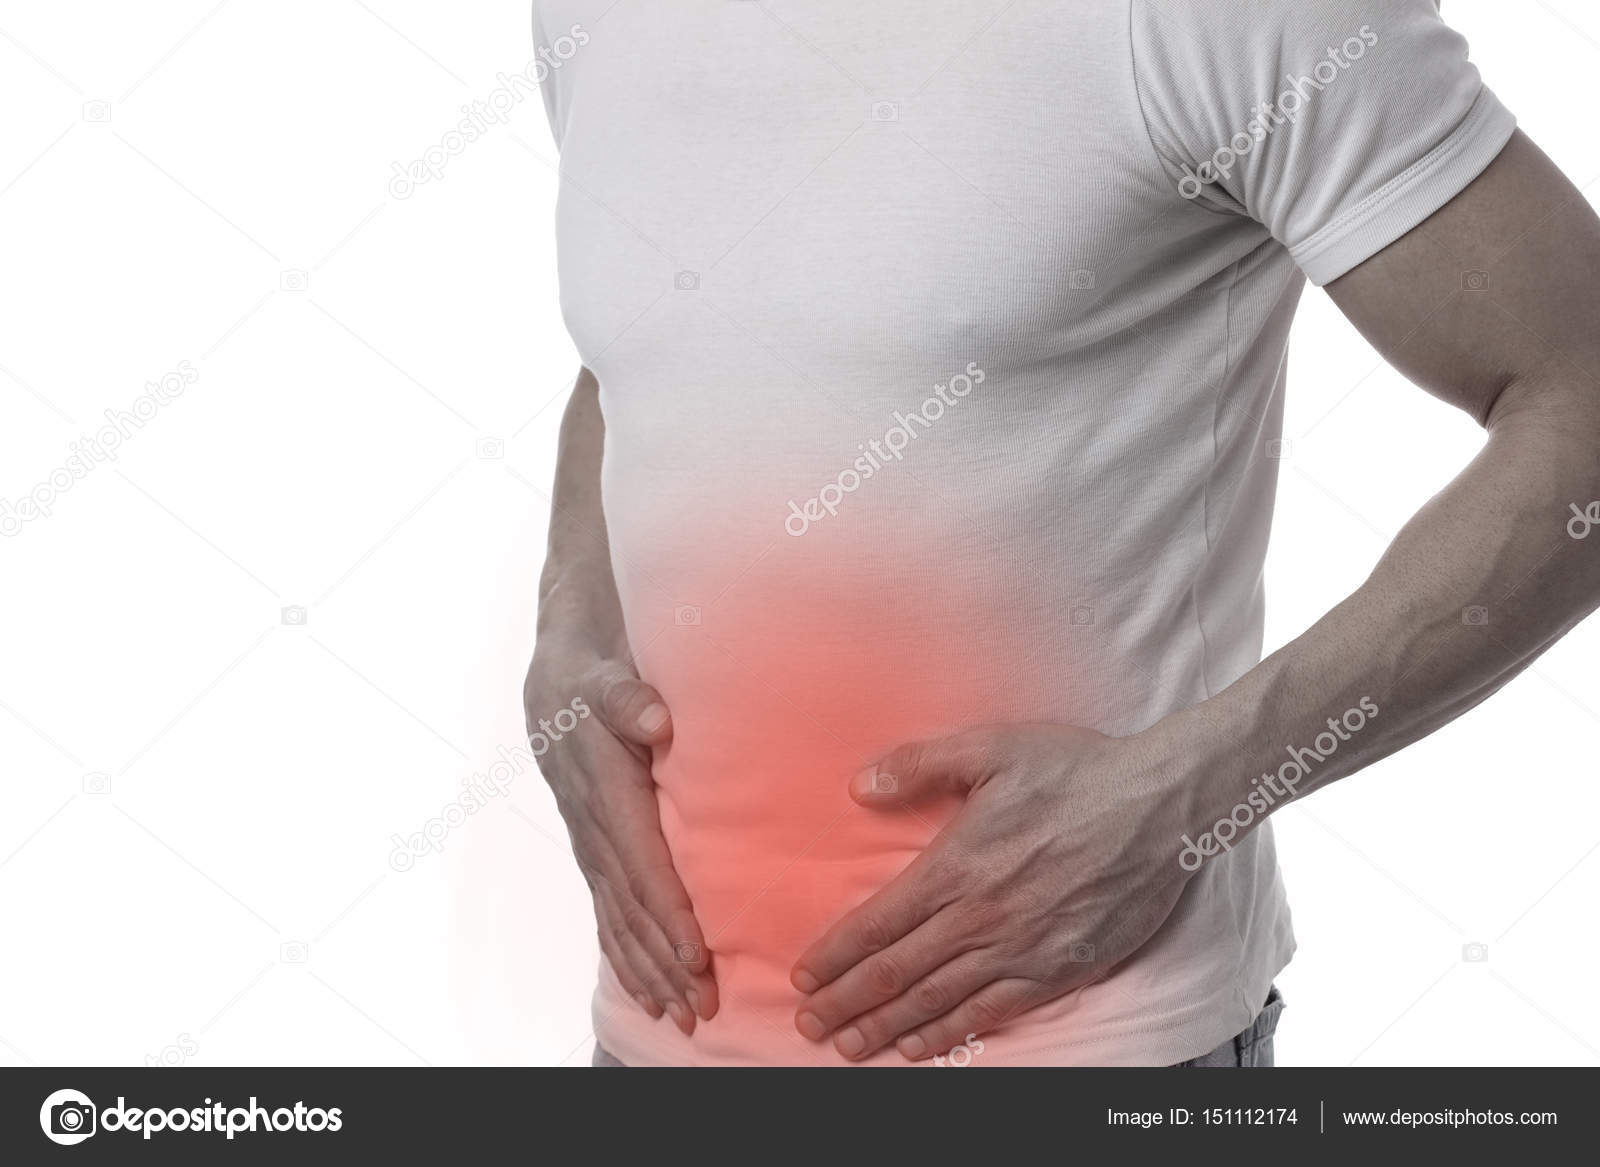 Man With Stomach Pain Digestive System Urinary Tract Infection